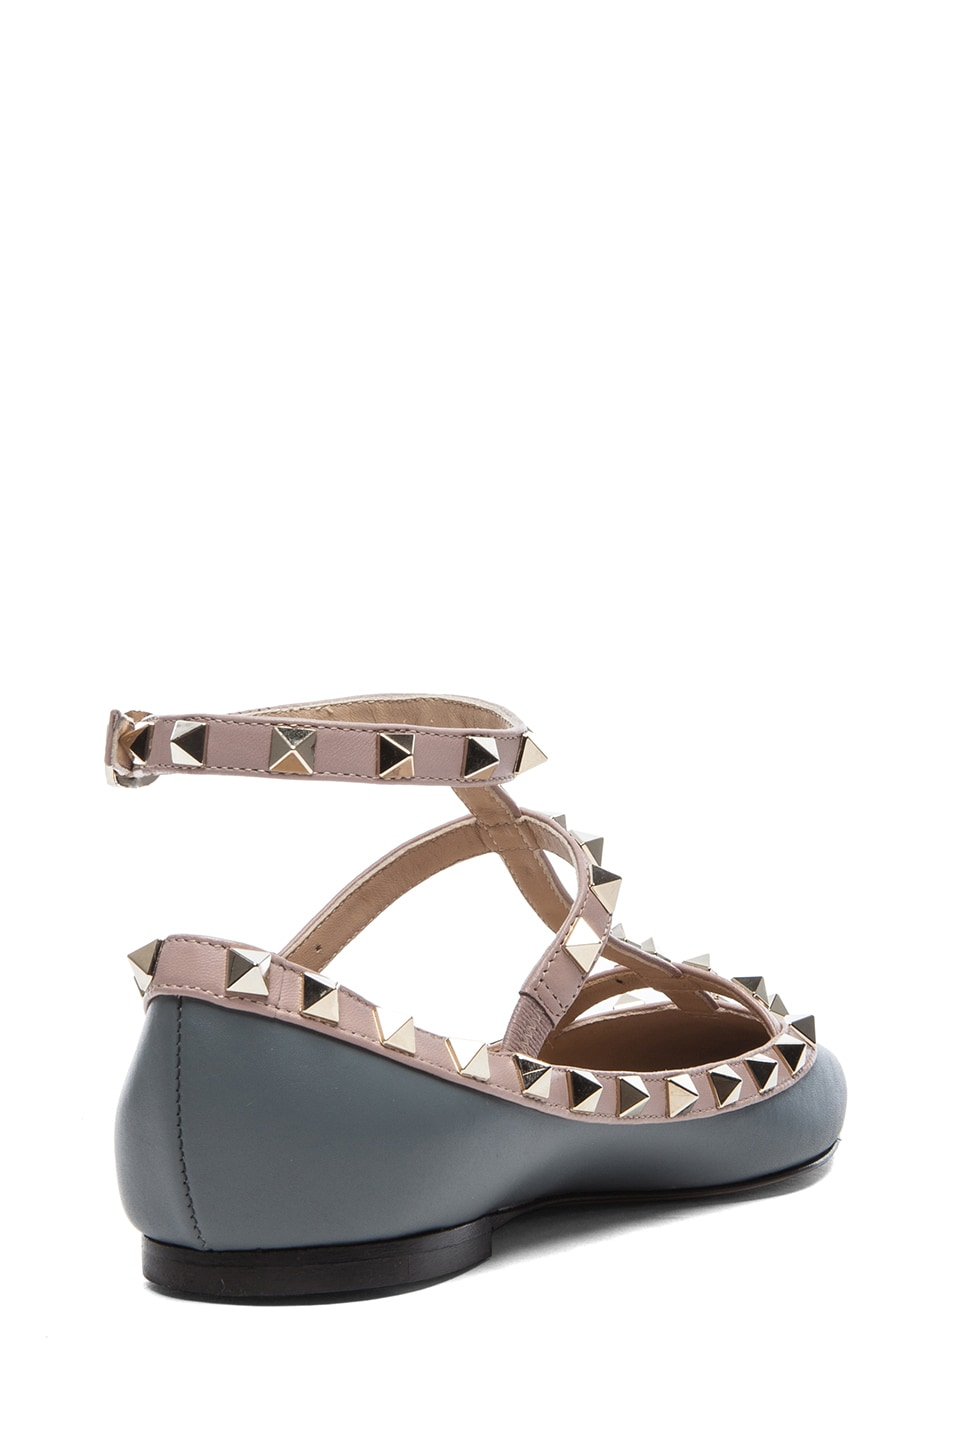 Image 3 of Valentino Rockstud Leather Ballerina Flats in Stone